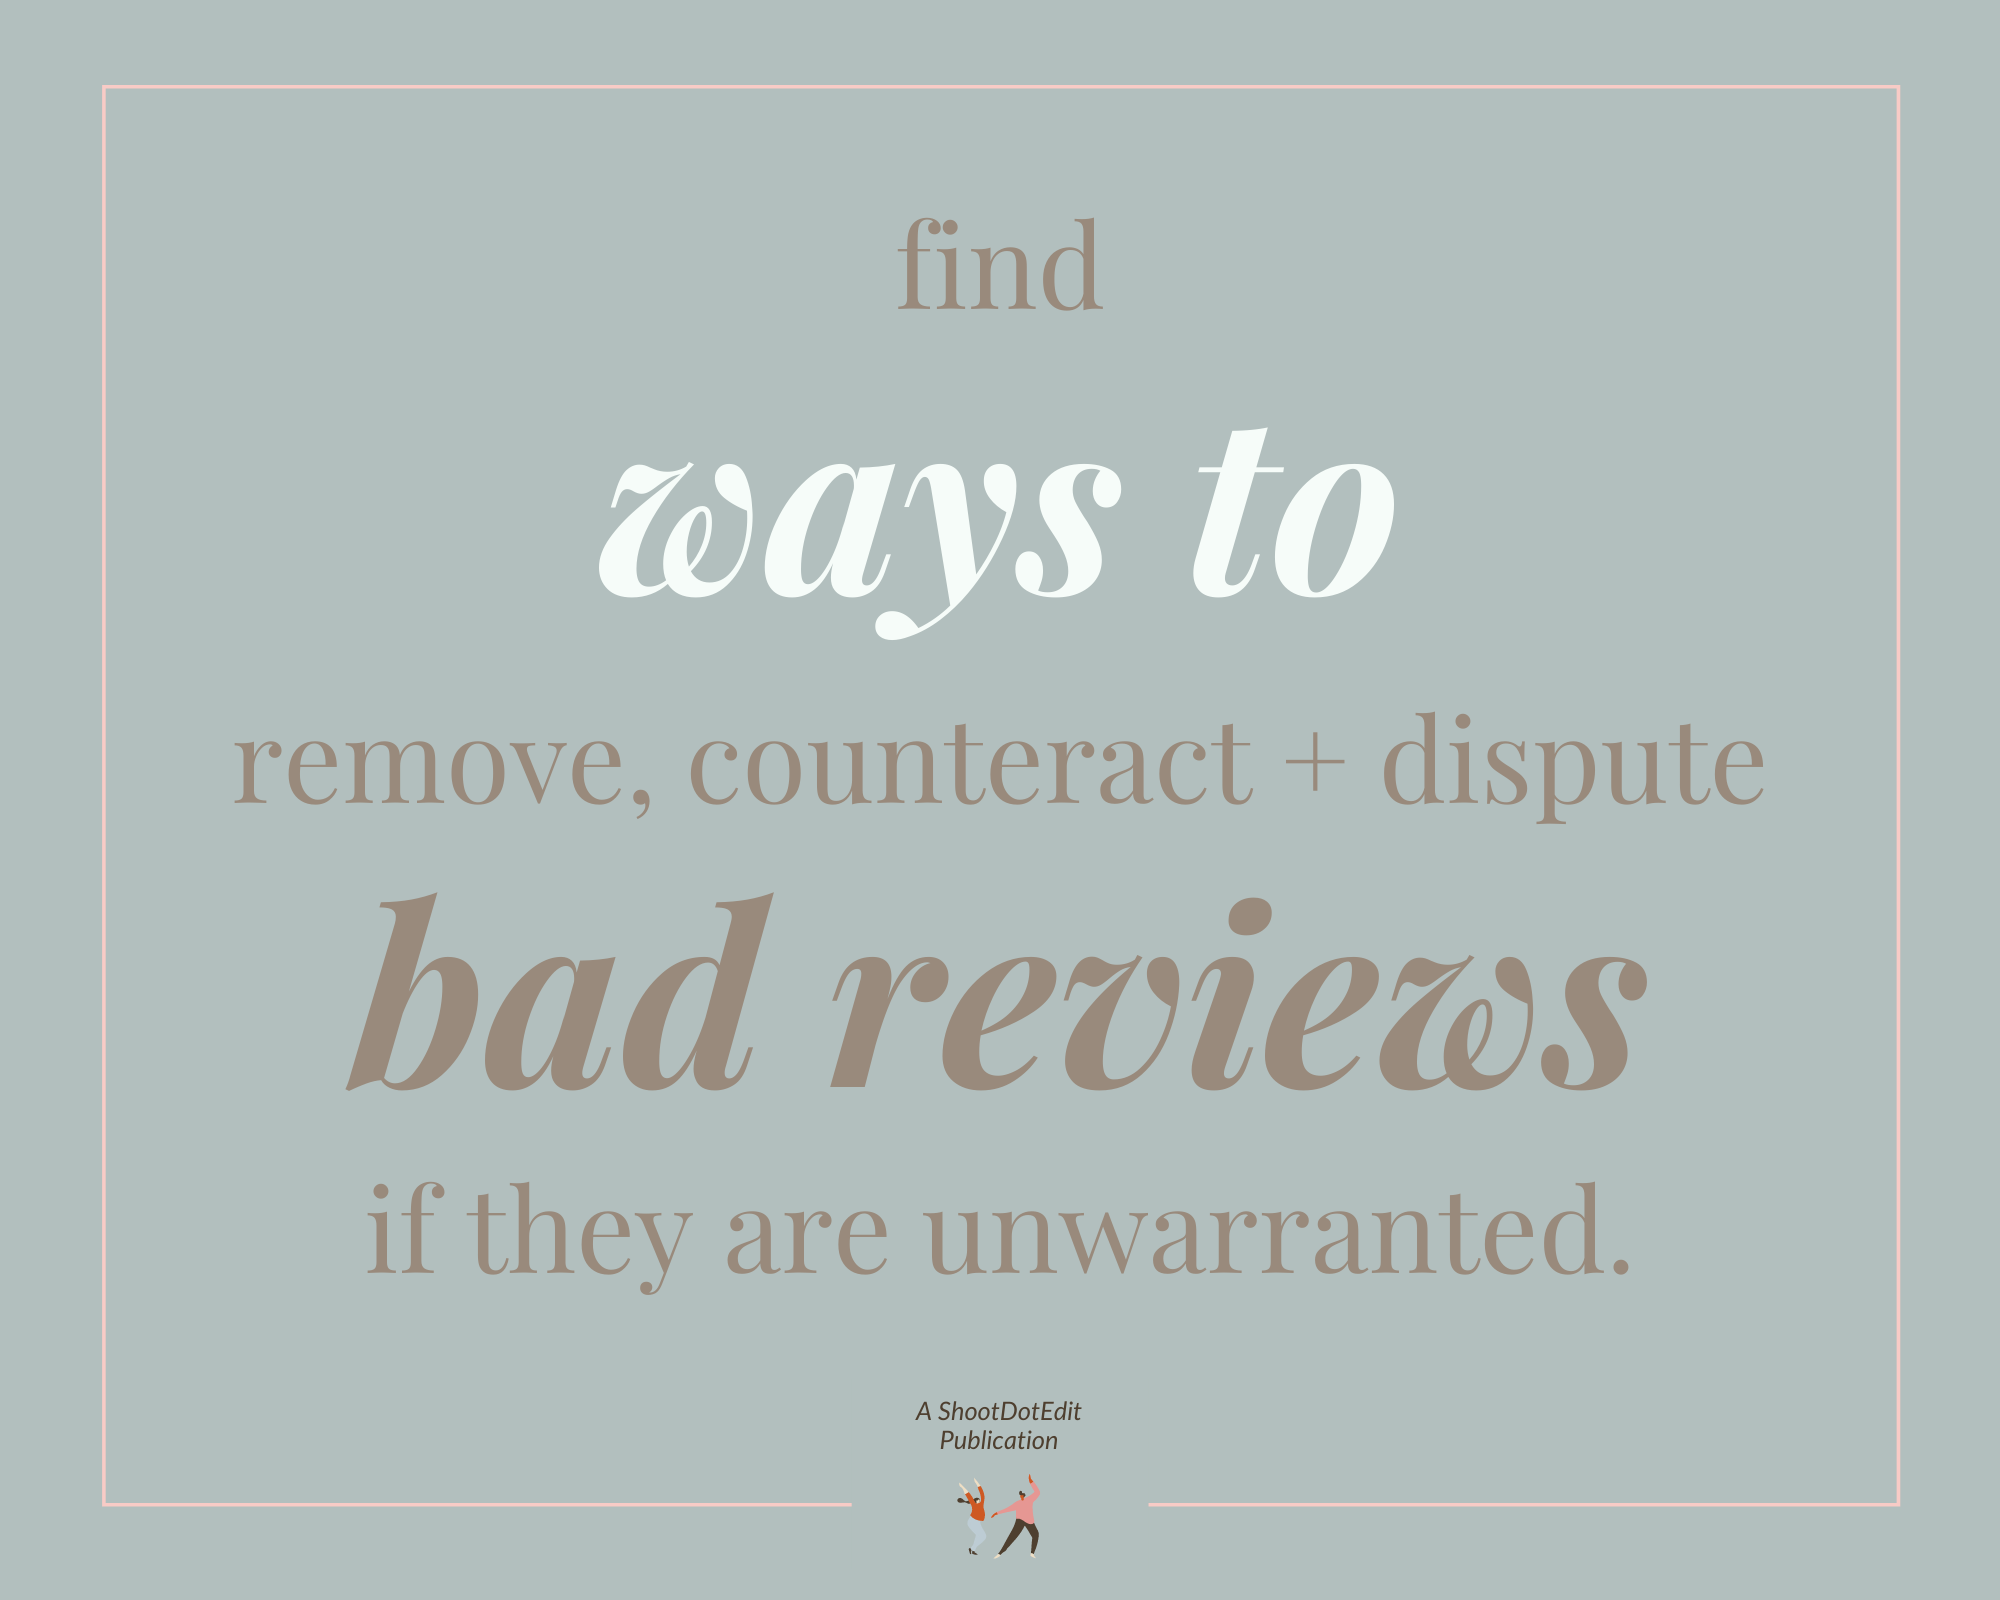 Graphic displaying - find ways to remove, counteract + dispute bad reviews if they are unwarranted.